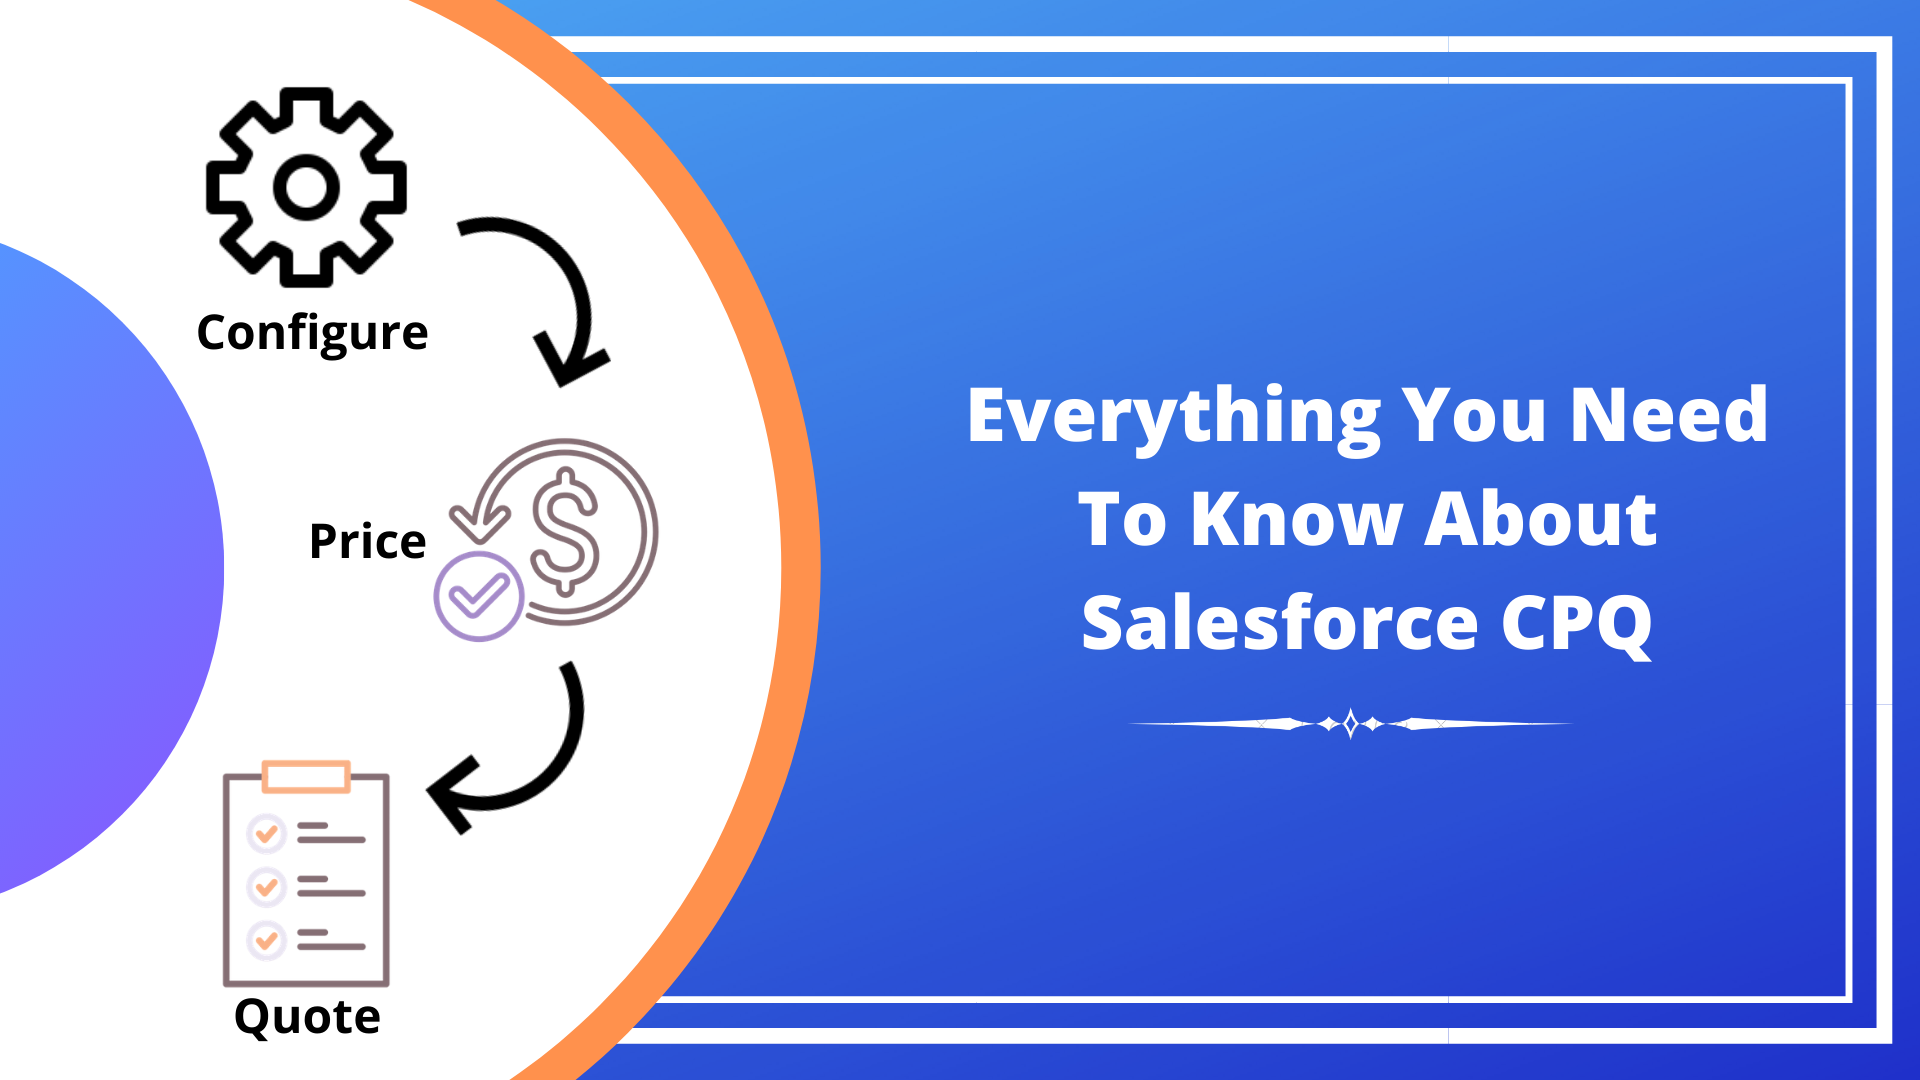 everything you need to know about Salesforce CPQ